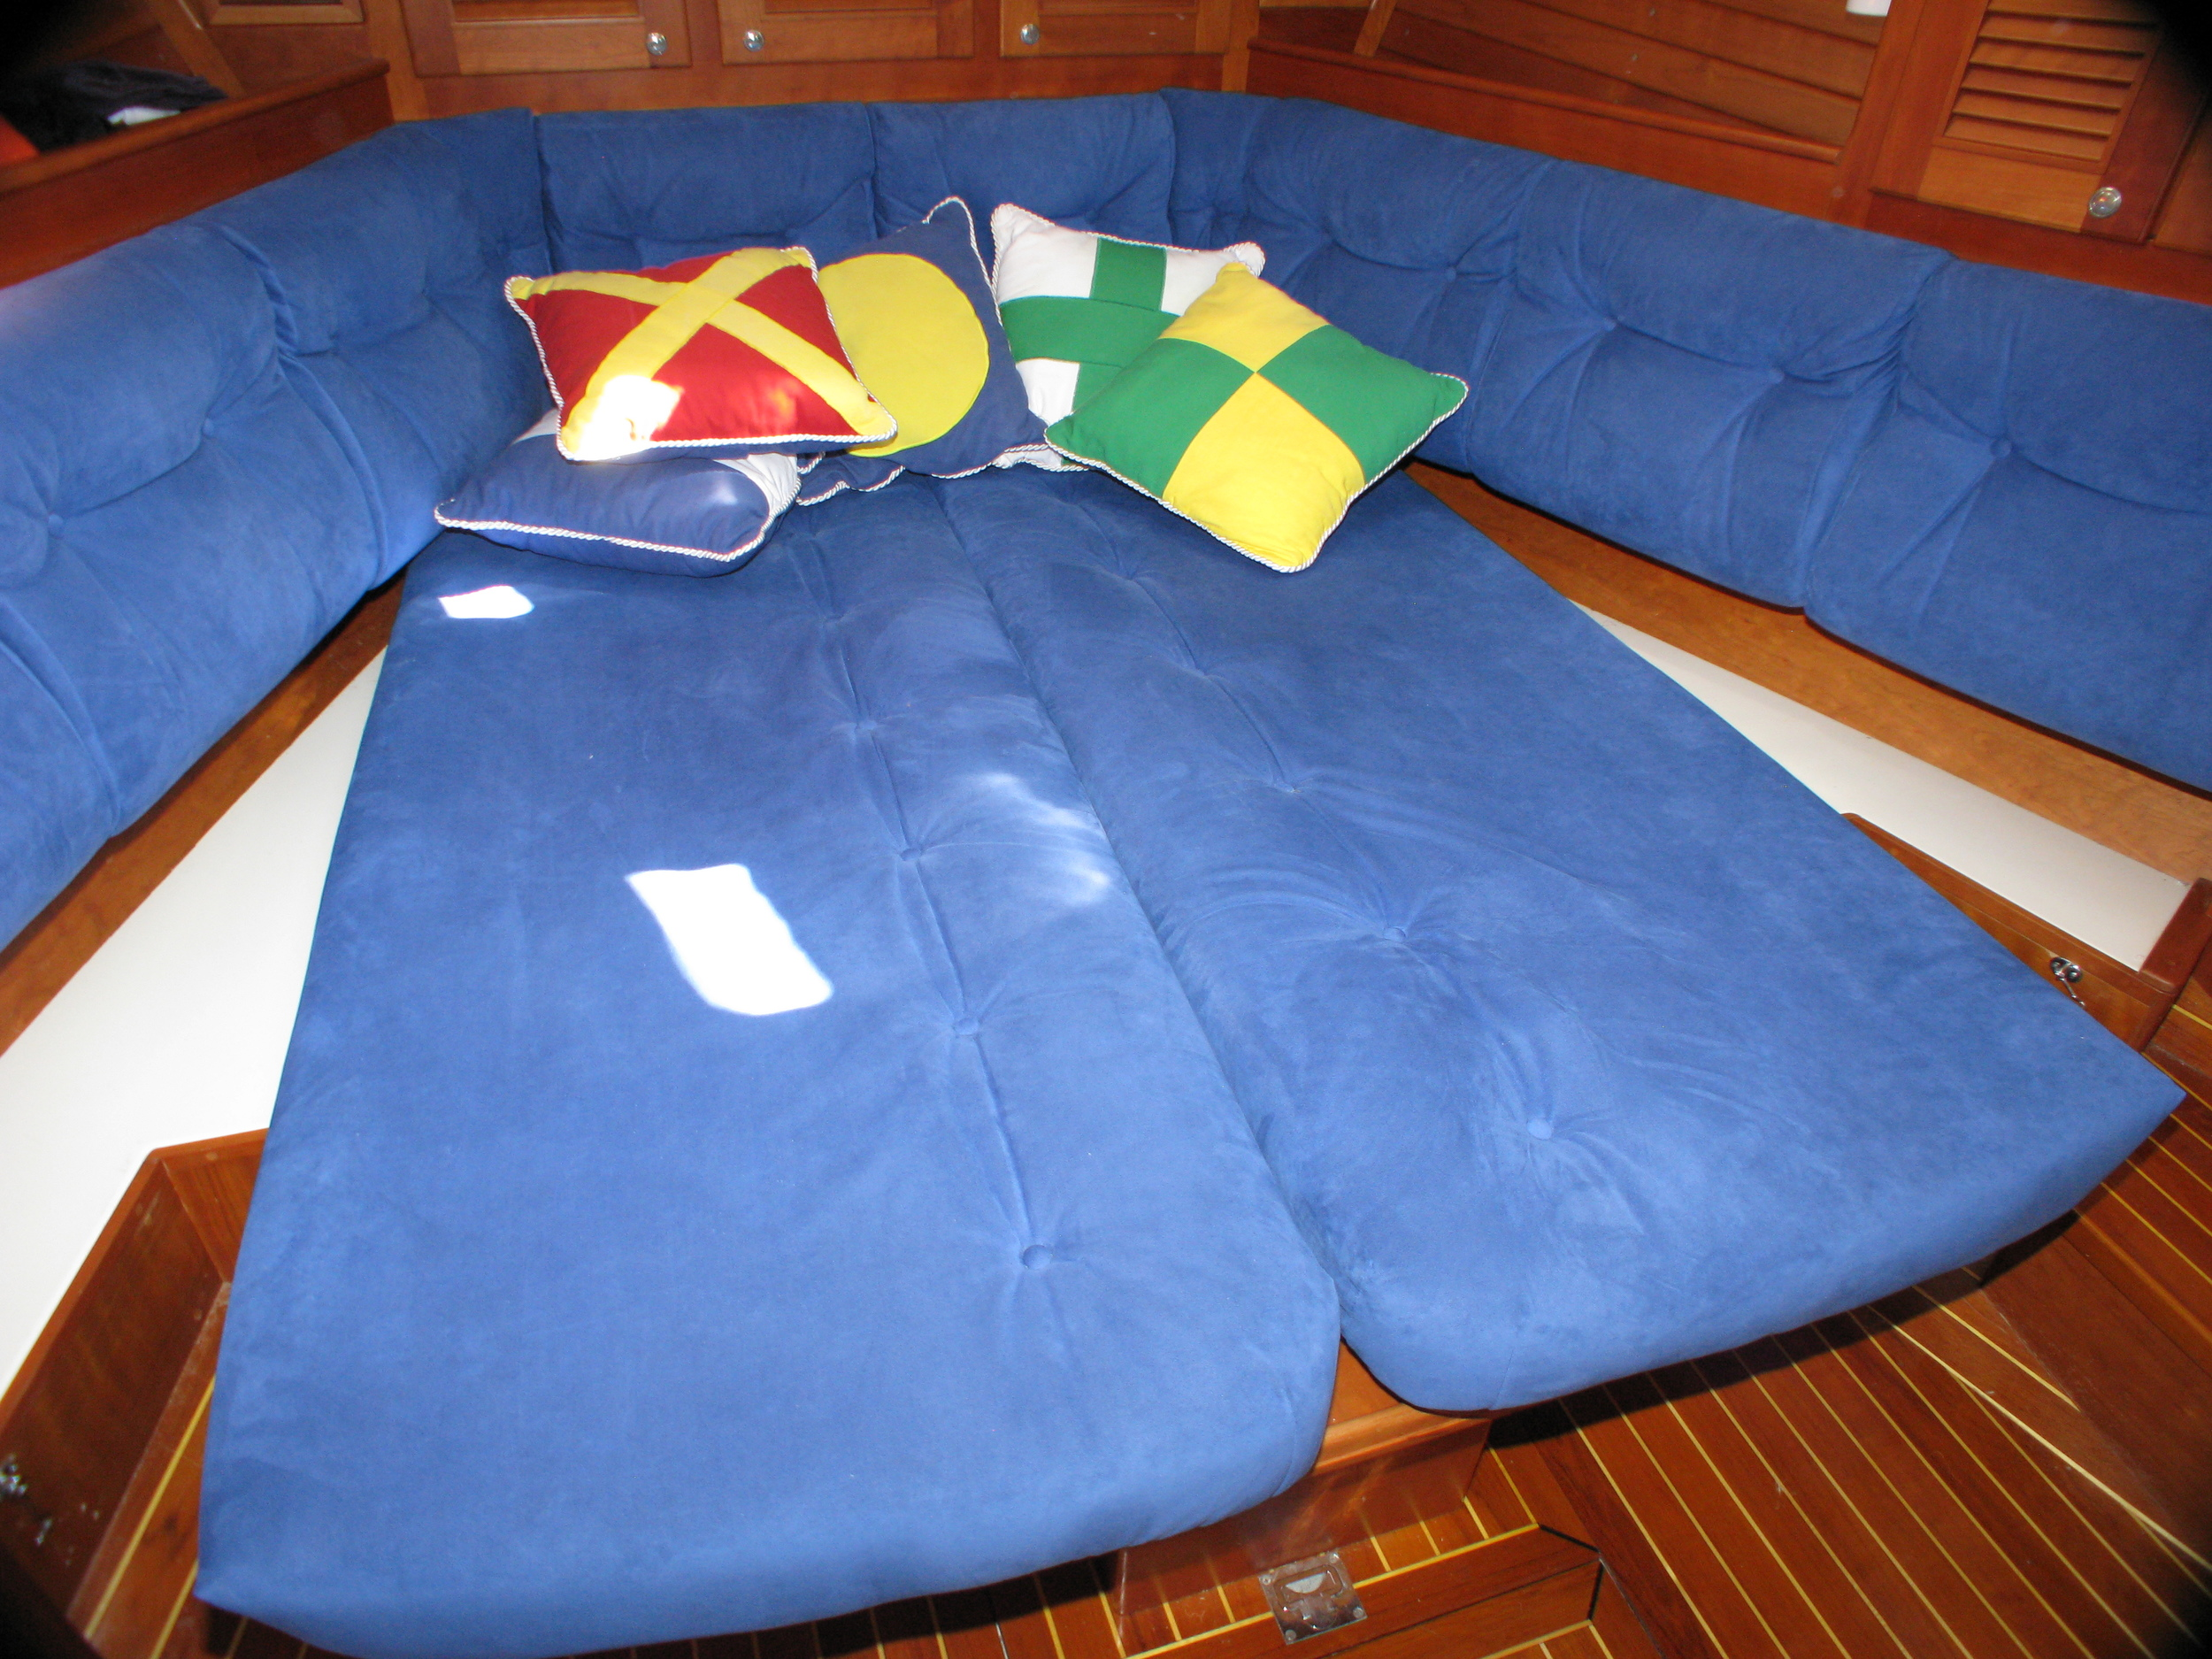 Forward Cabin - configured for sleeping 2 singles or one queen